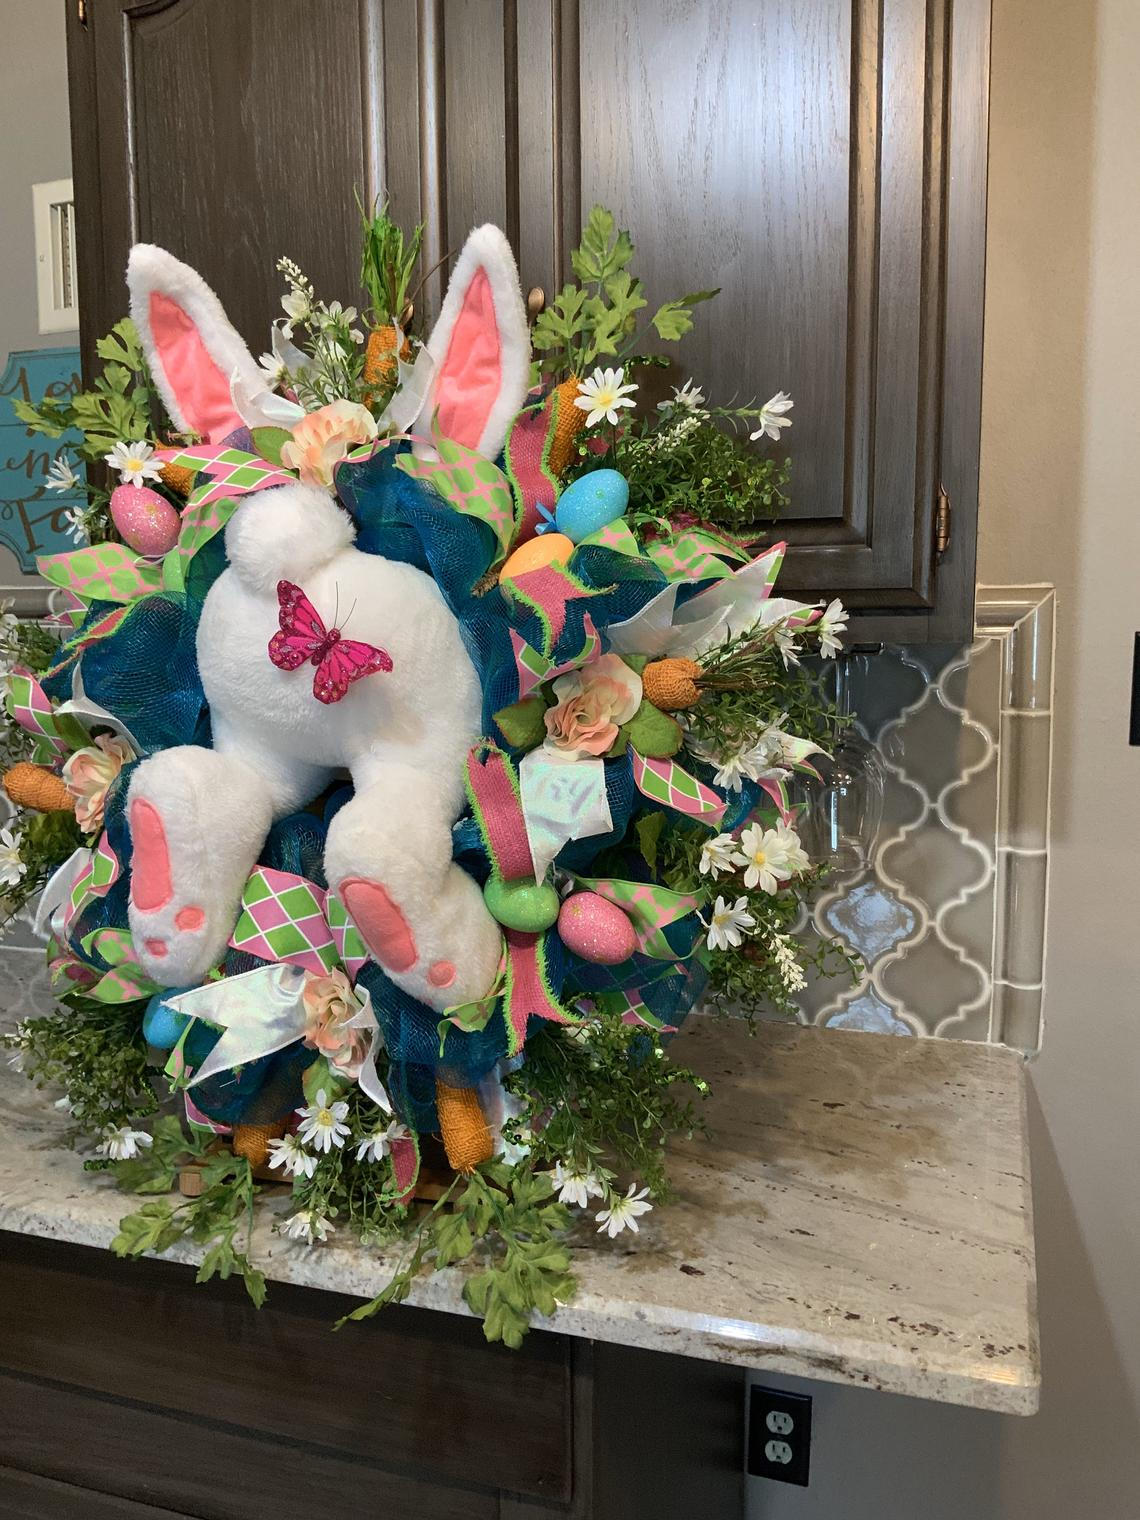 🔥 Easter Pre-Sale🔥50% OFF 🔥Easter Bunny Wreath, Easter Wreath, Easter Decorations, Easter Decor, Easter Swags, Door Decor